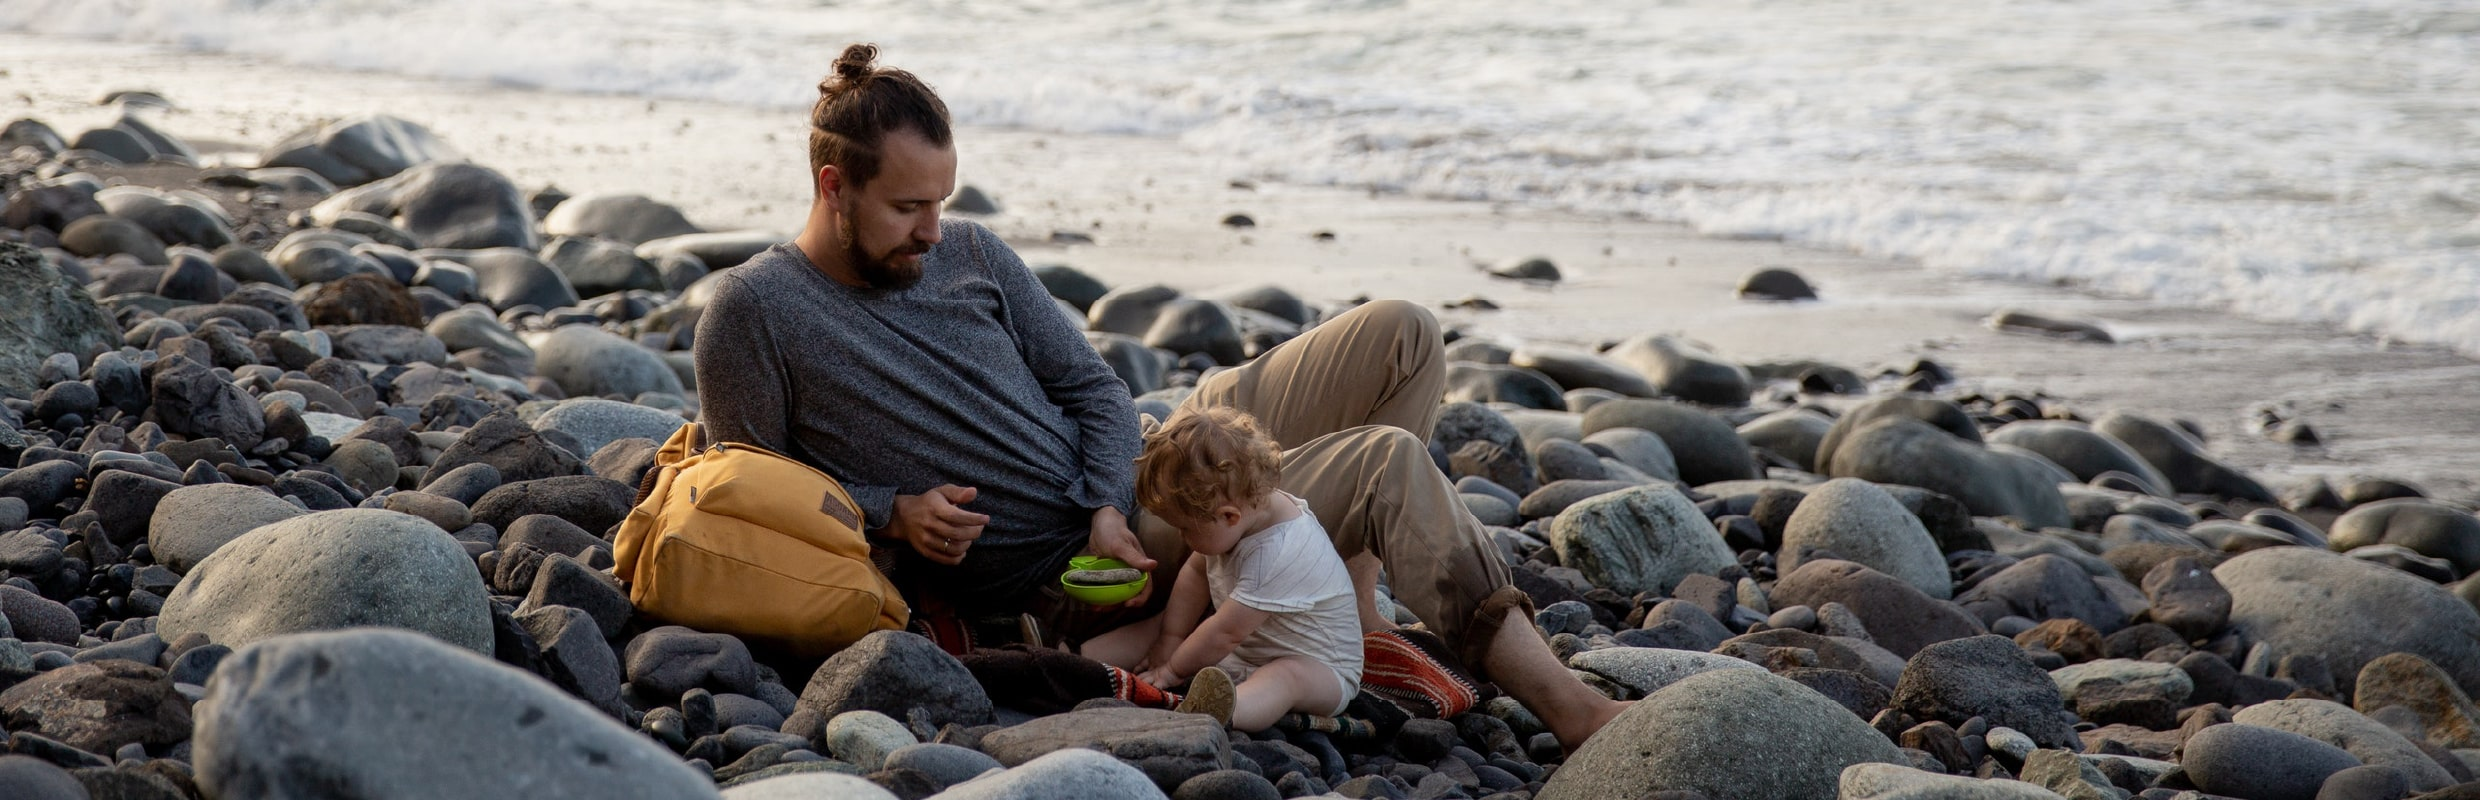 Dad and child on stony beach playing